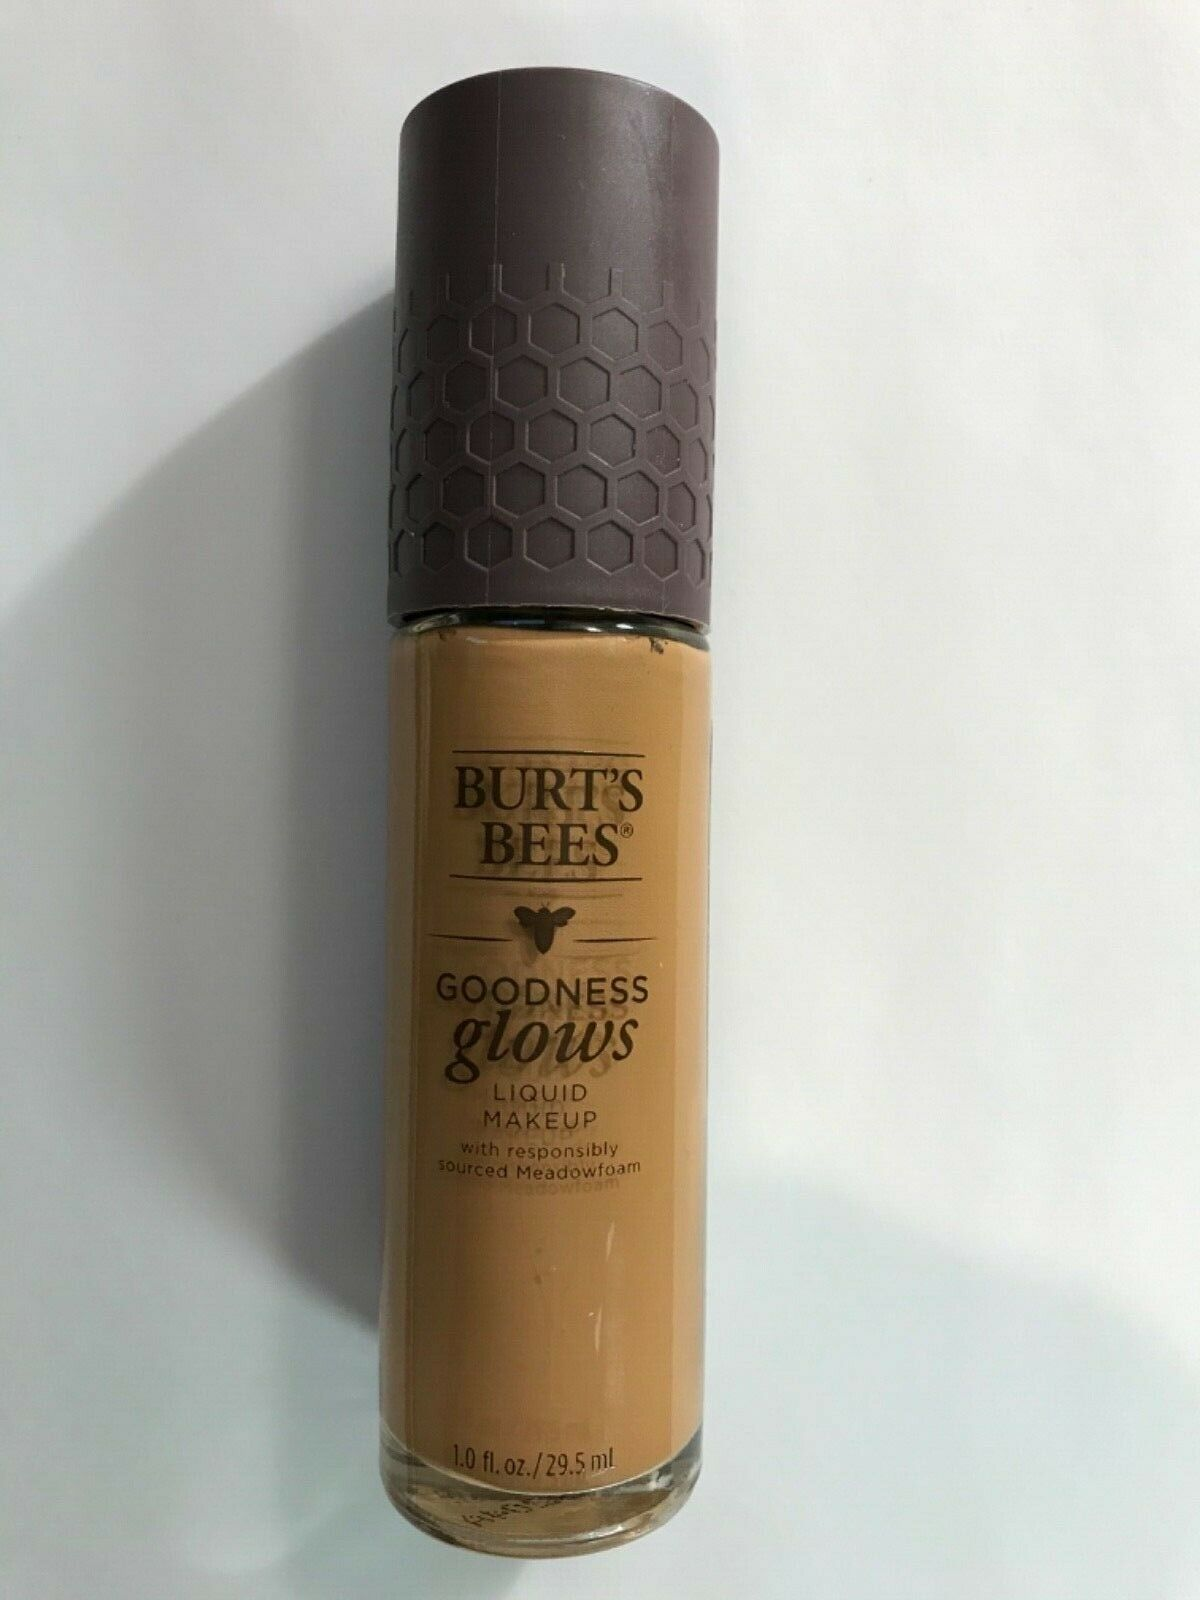 Primary image for Burt's Bees Goodness Glows Full Coverage Liquid Makeup in #1056 WALNUT